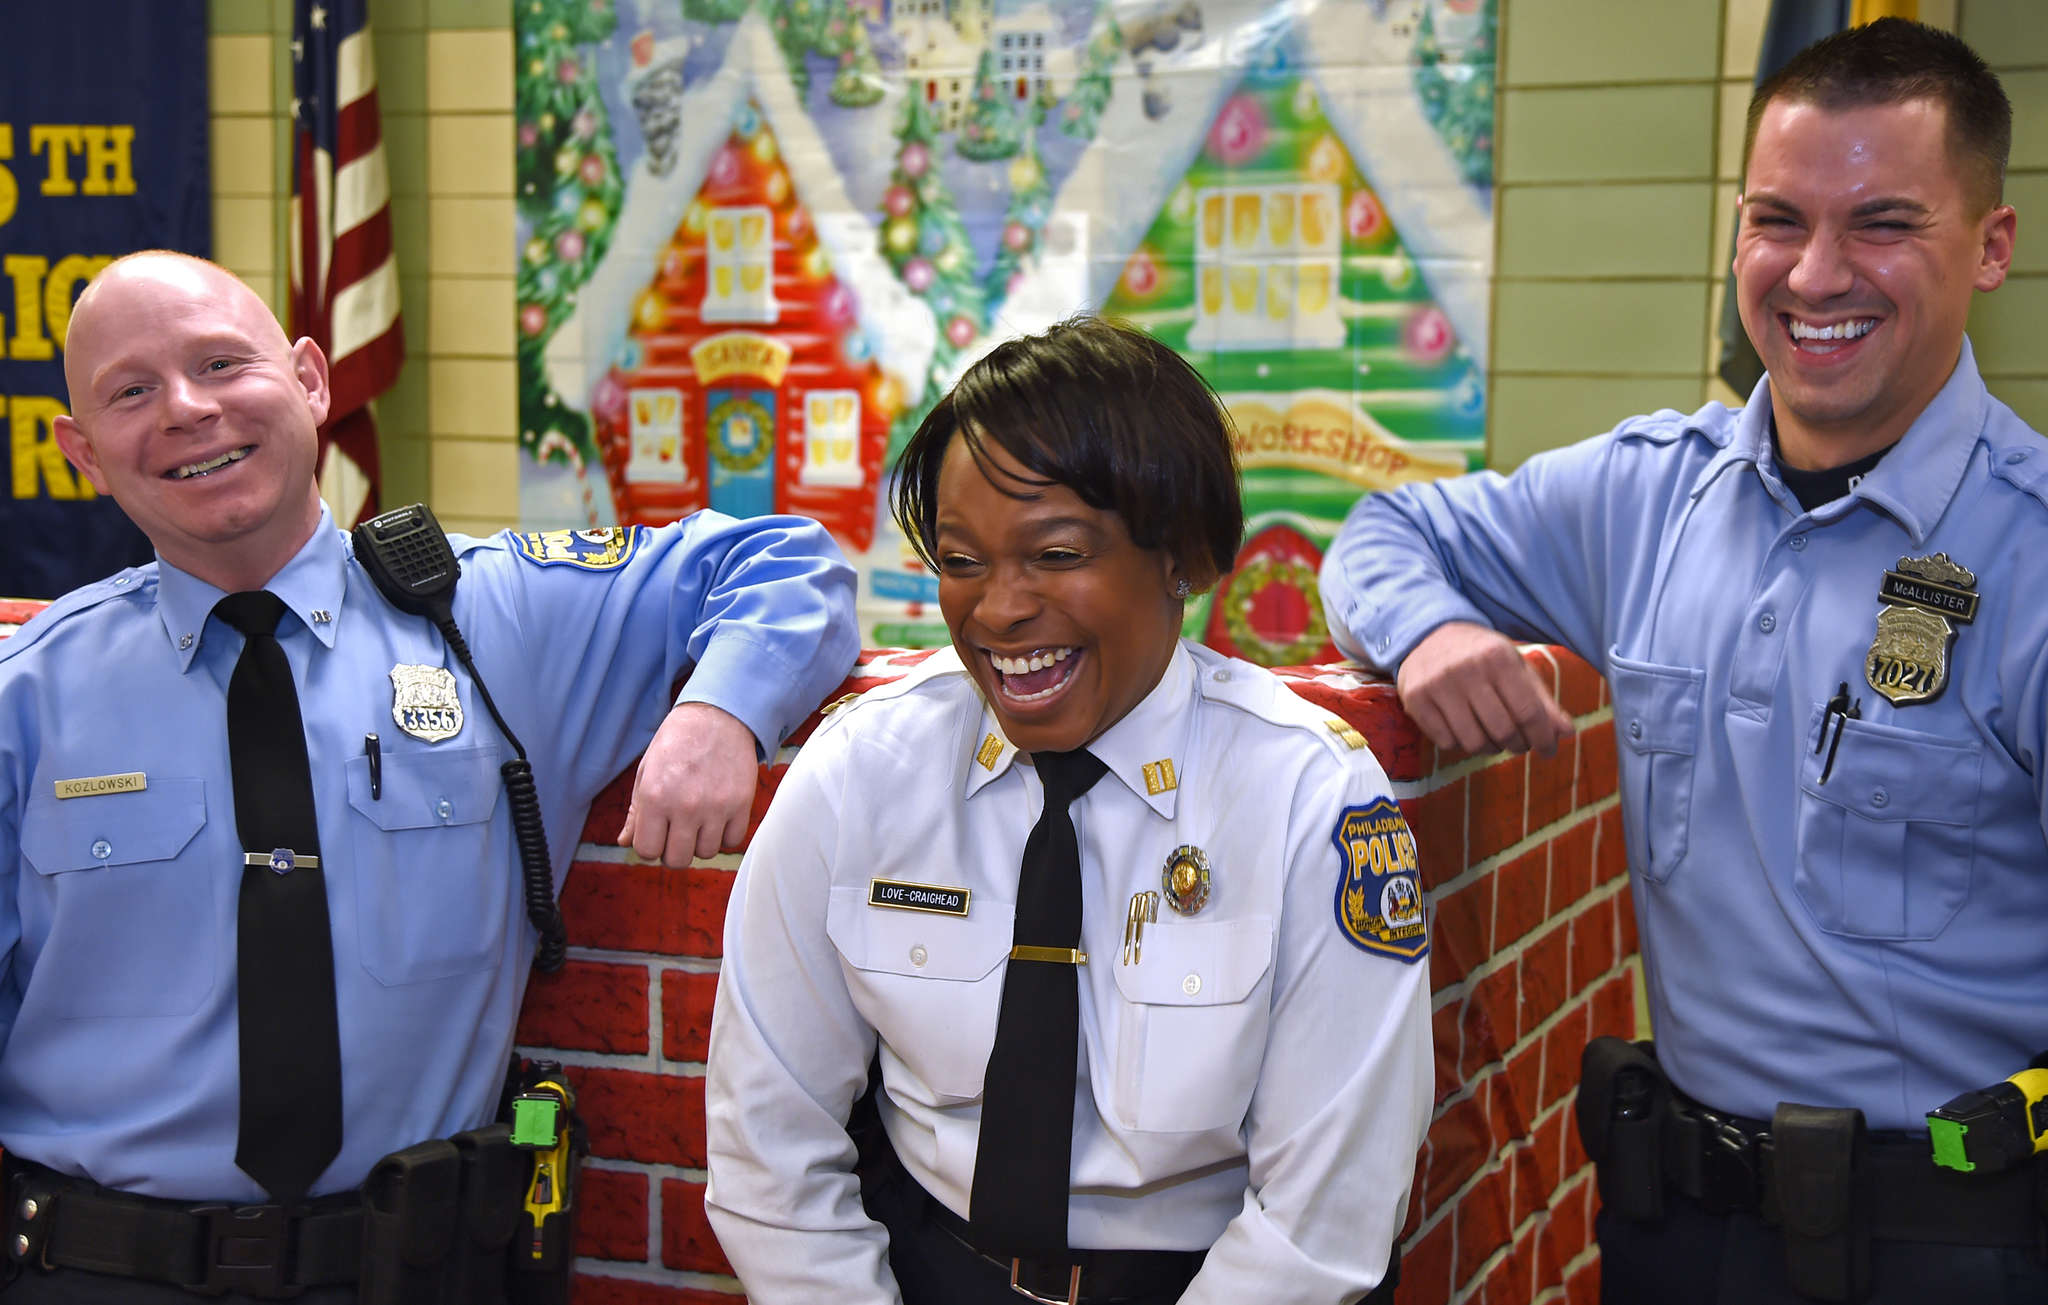 After committing random acts of kindness, Officers Will Kozlwoski (left) and Sean McAllister are all smiles with Capt. Altovise Love-Craighead. TOM GRALISH / Staff Photographer